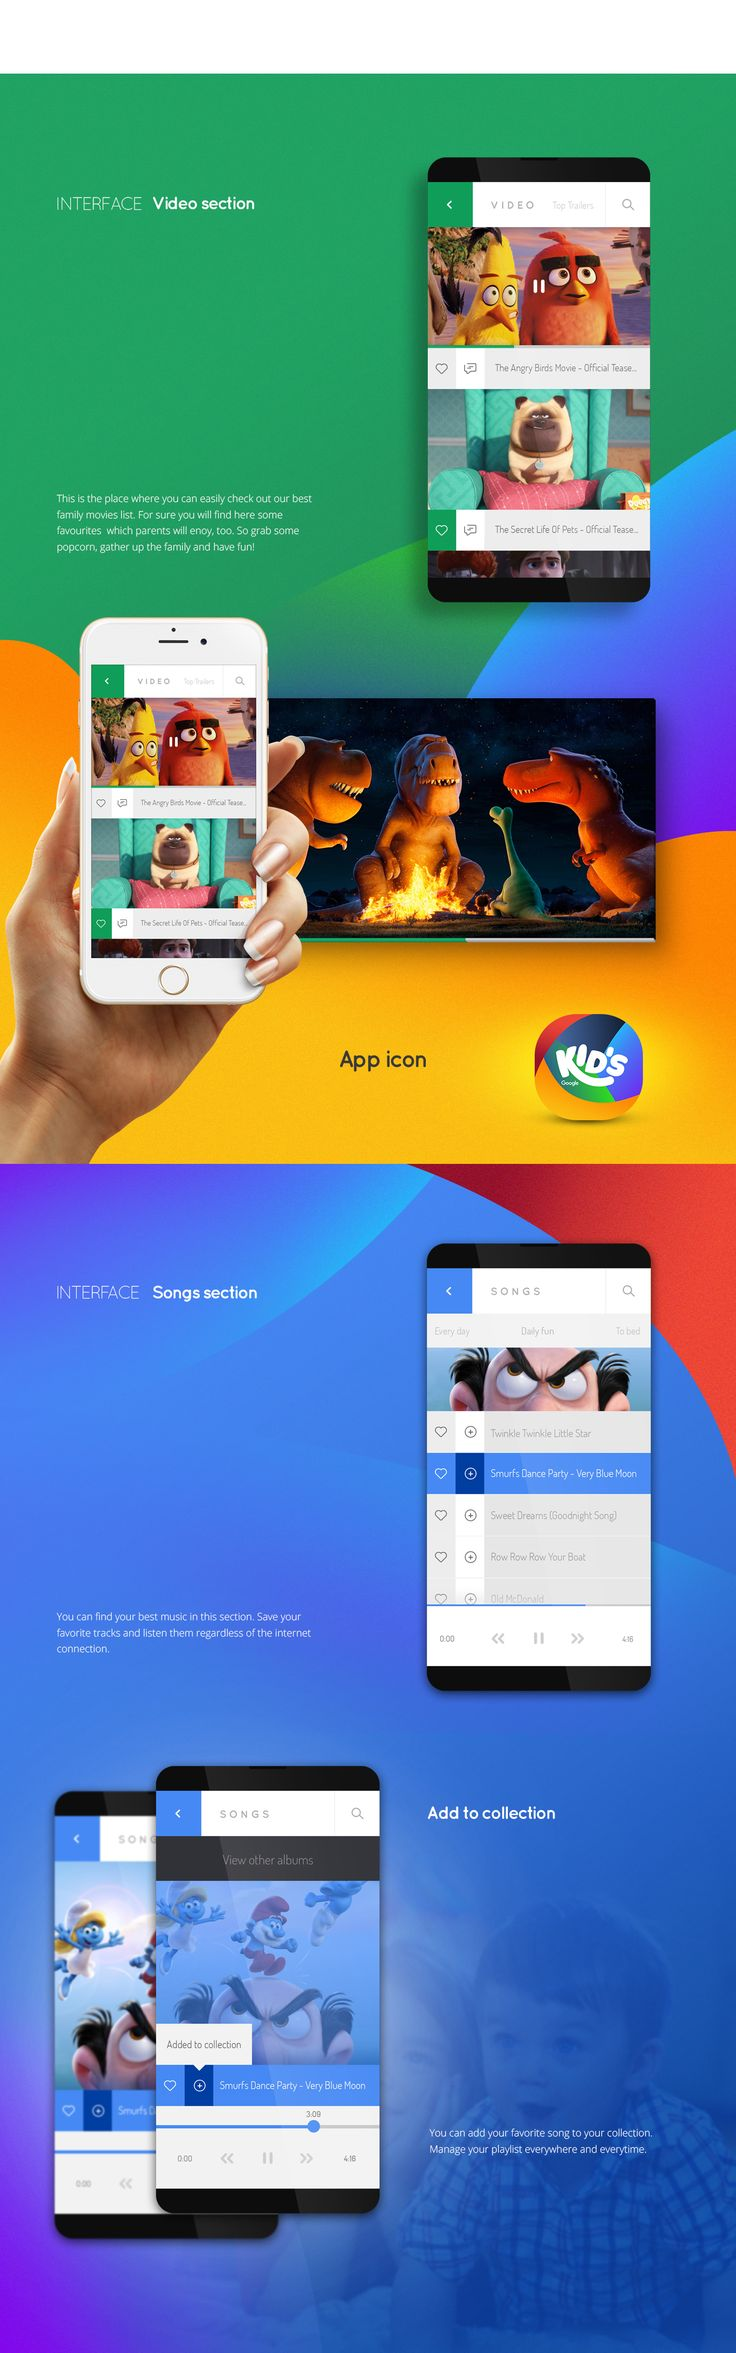 Google kids - it's the best app for childs. Everything what they are looking for in one place.